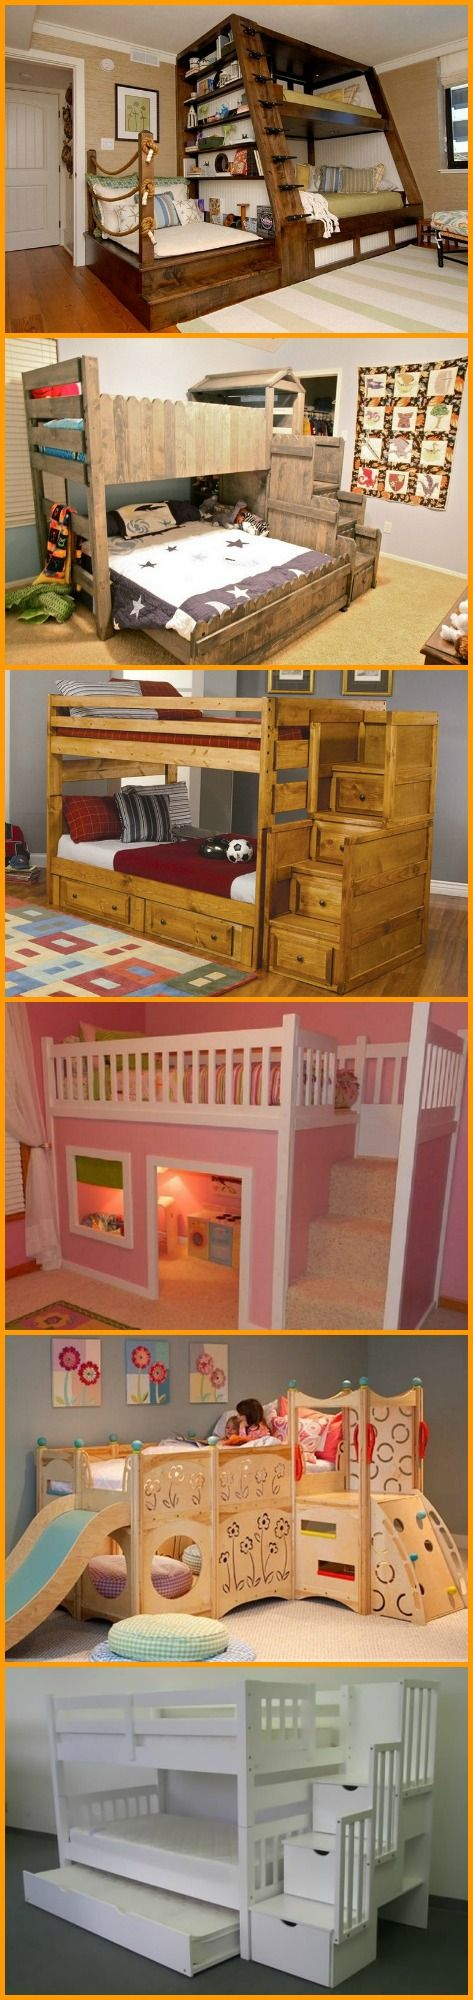 """Whether they're for fun or function, bunk beds come in all shapes and styles. Find the bunk bed that suits you in our """"Bunk Beds"""" album at http://theownerbuildernetwork.co/iv75 Don't forget to let us know your favorite!"""